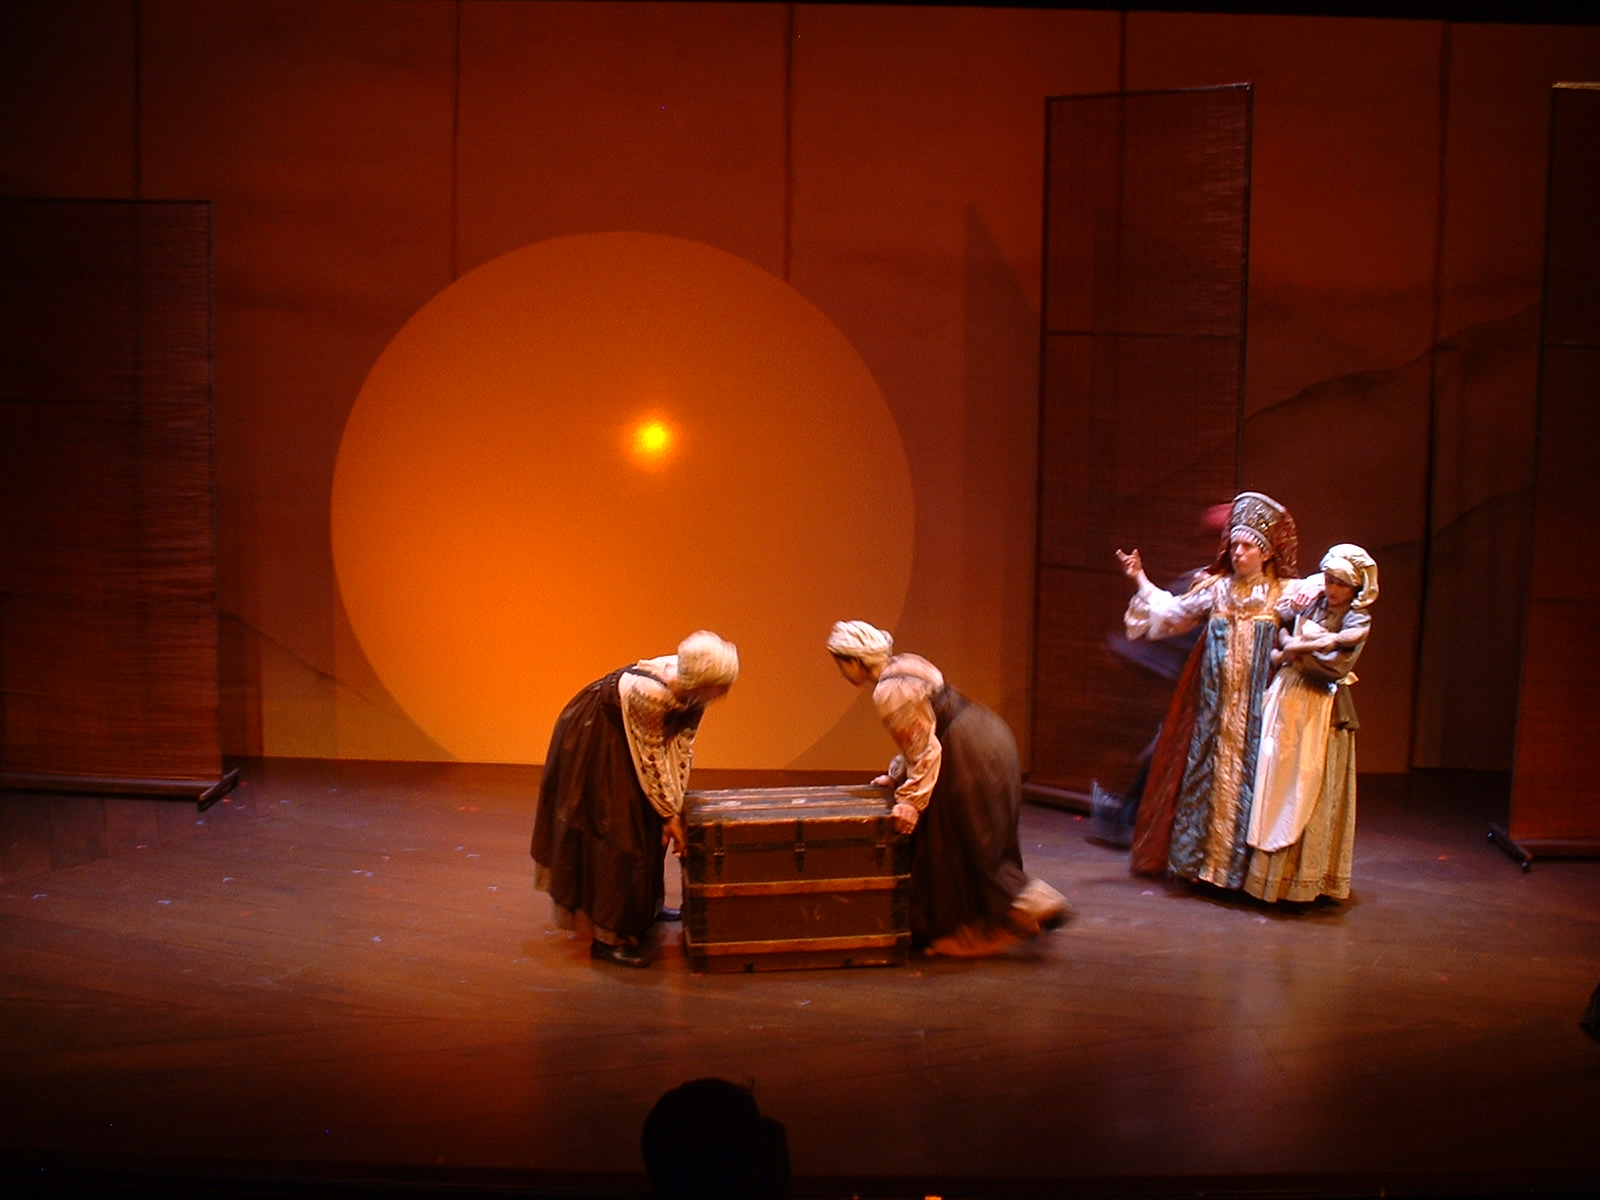 """""""The seemingly simple, fecund theatricality of Bertolt Brecht's great parable comes richly to life in Mark Jackson's inventively staged 2 1/4-hour production for the American Conservatory Theater's Master of Fine Arts Program… It's a good match of playwright and director. Jackson, the founder of Art Street Theatre, knows his 20th century radical theater well, as he proved by writing and directing the brilliant The Death of Meyerhold with Shotgun Players in '03… Jackson blends most of the performances well and does a beautiful job developing the two stories that converge in Brecht's plot. And he's staged the action fluidly and humorously, with evocative visual and aural beauty and simplicity. Adesperate venture across a broken suspension bridge is stunningly staged.""""     SAN FRANCISCO CHRONICLE"""